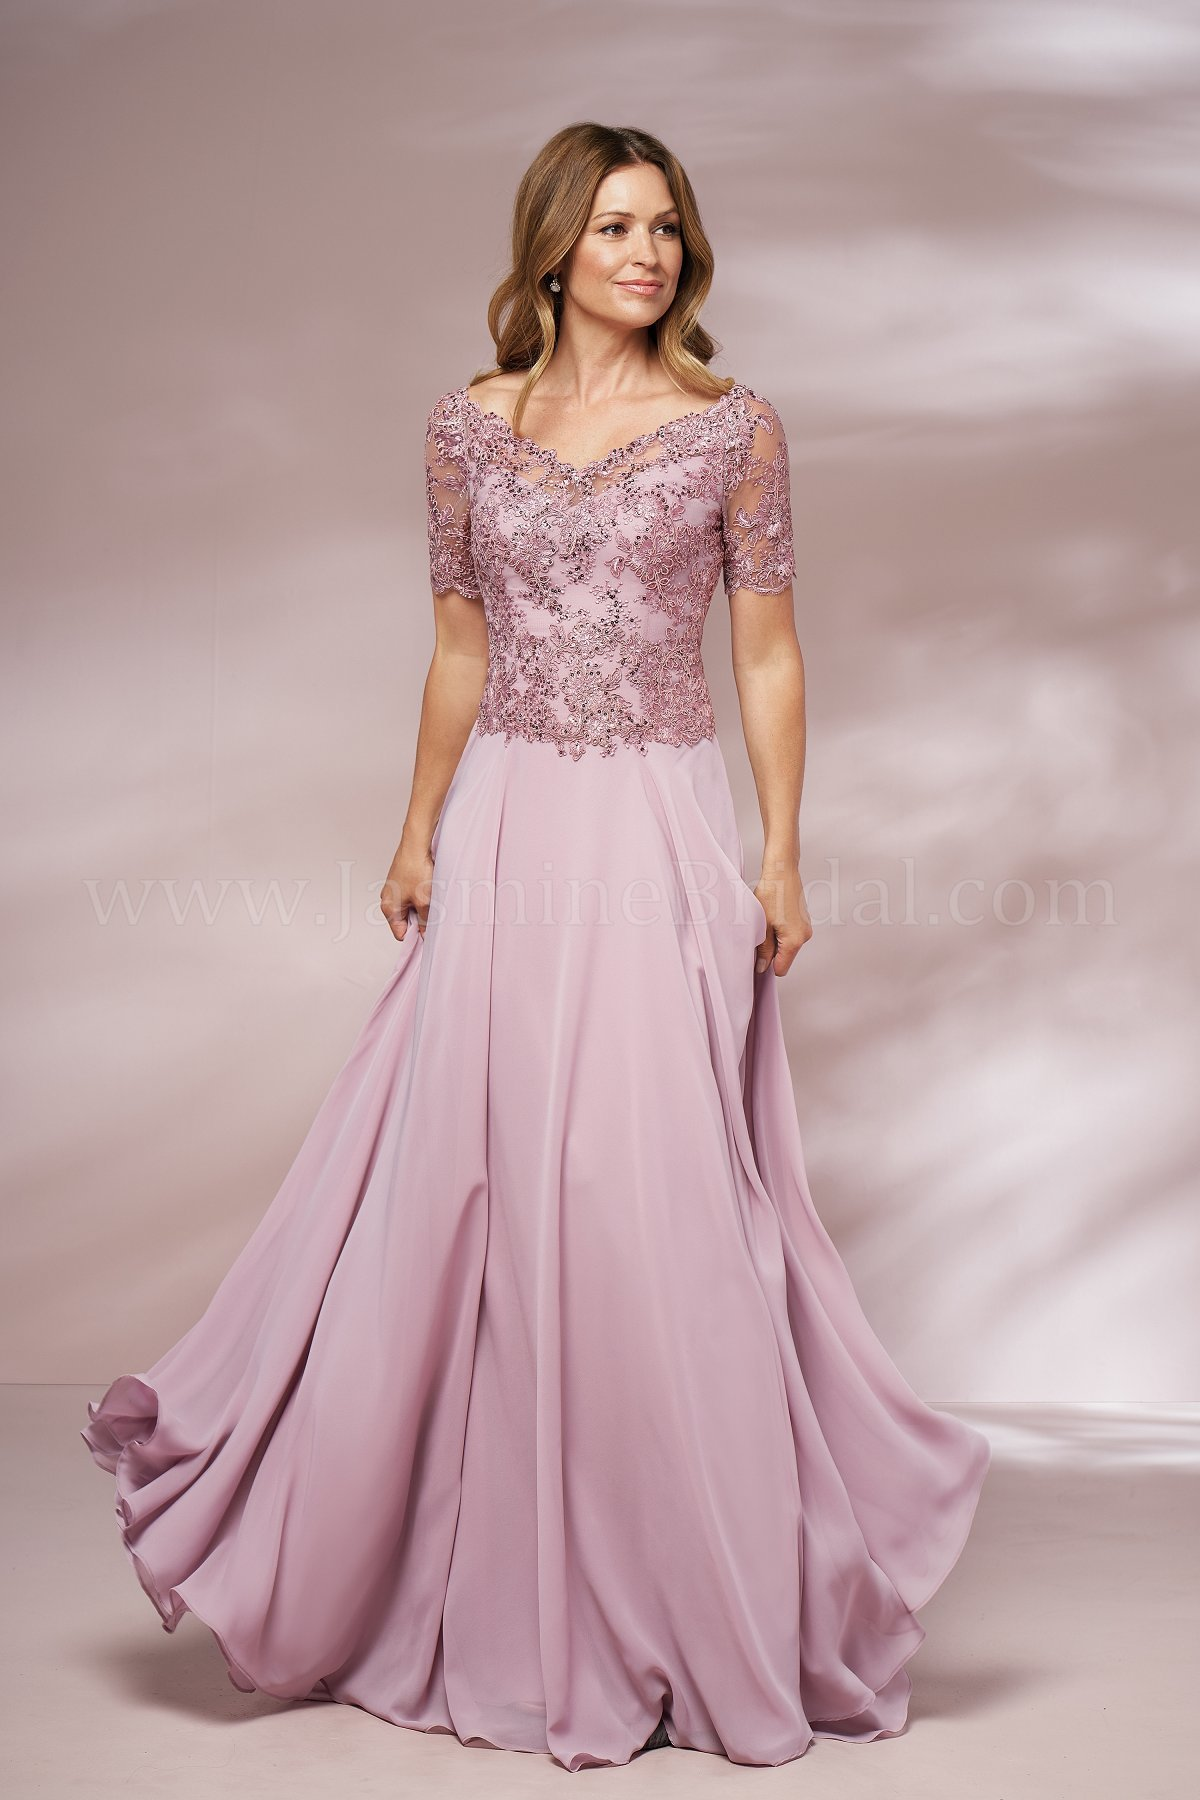 mother-of-the-bride-dresses-J205014-F